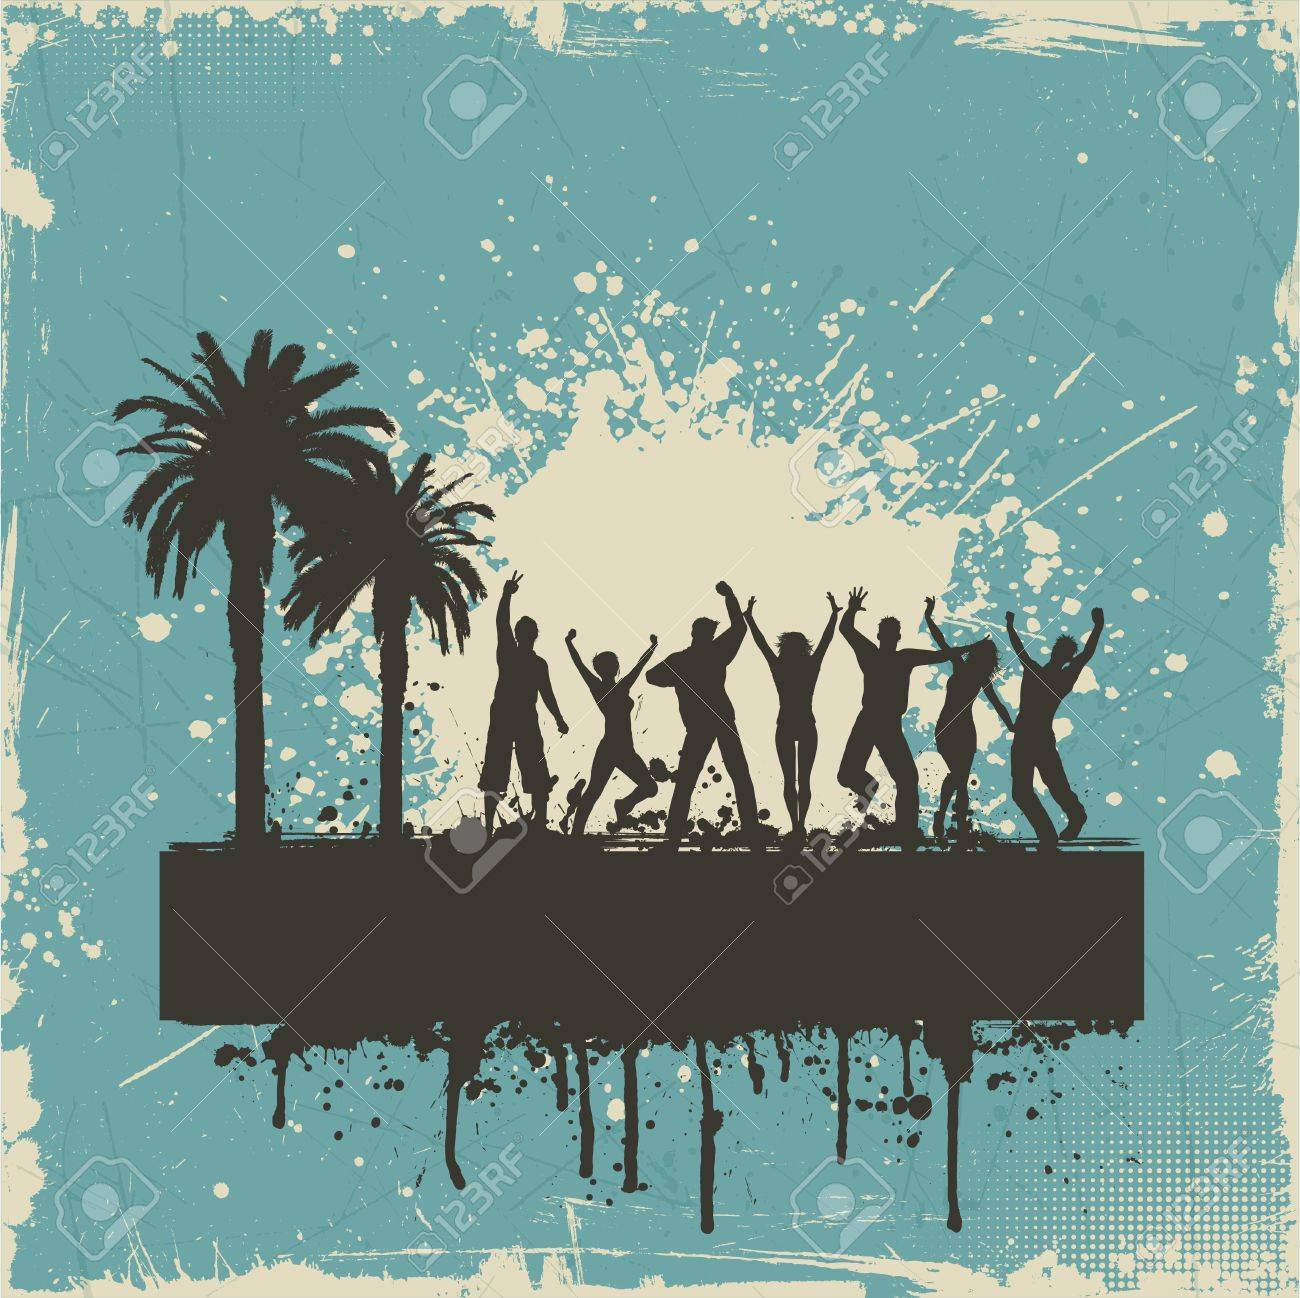 Tropical grunge background with silhouettes of people dancing Stock Photo - 19689750